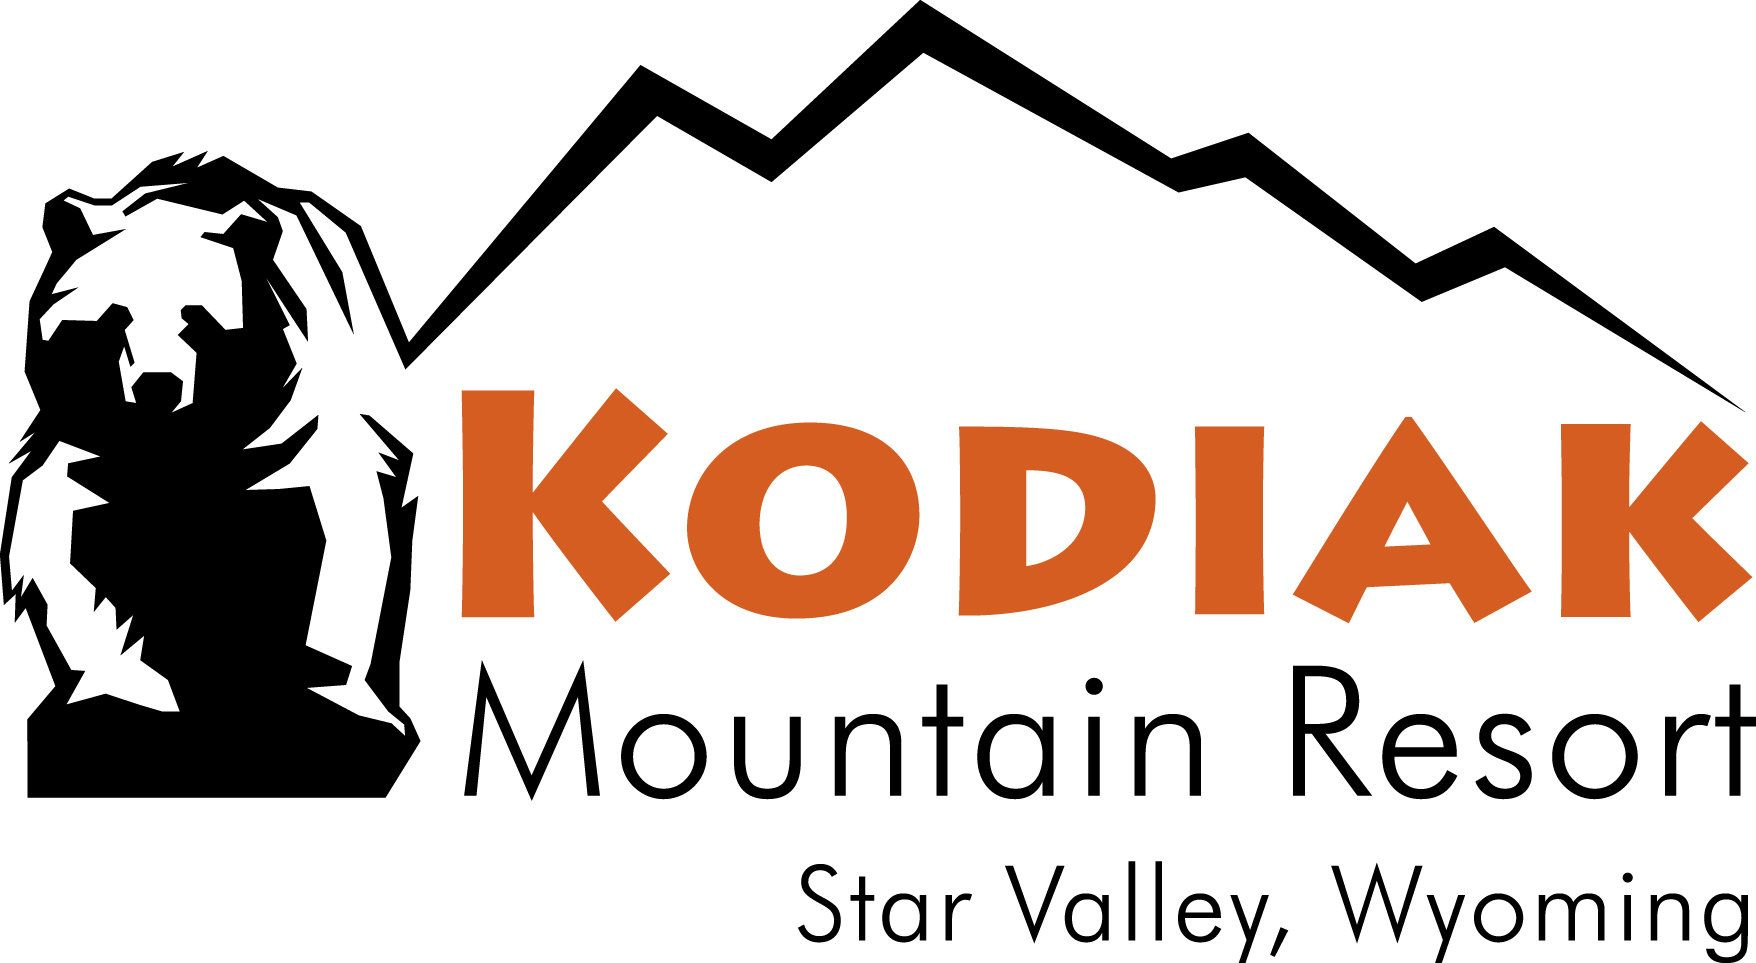 Kodiak Mountain Resort